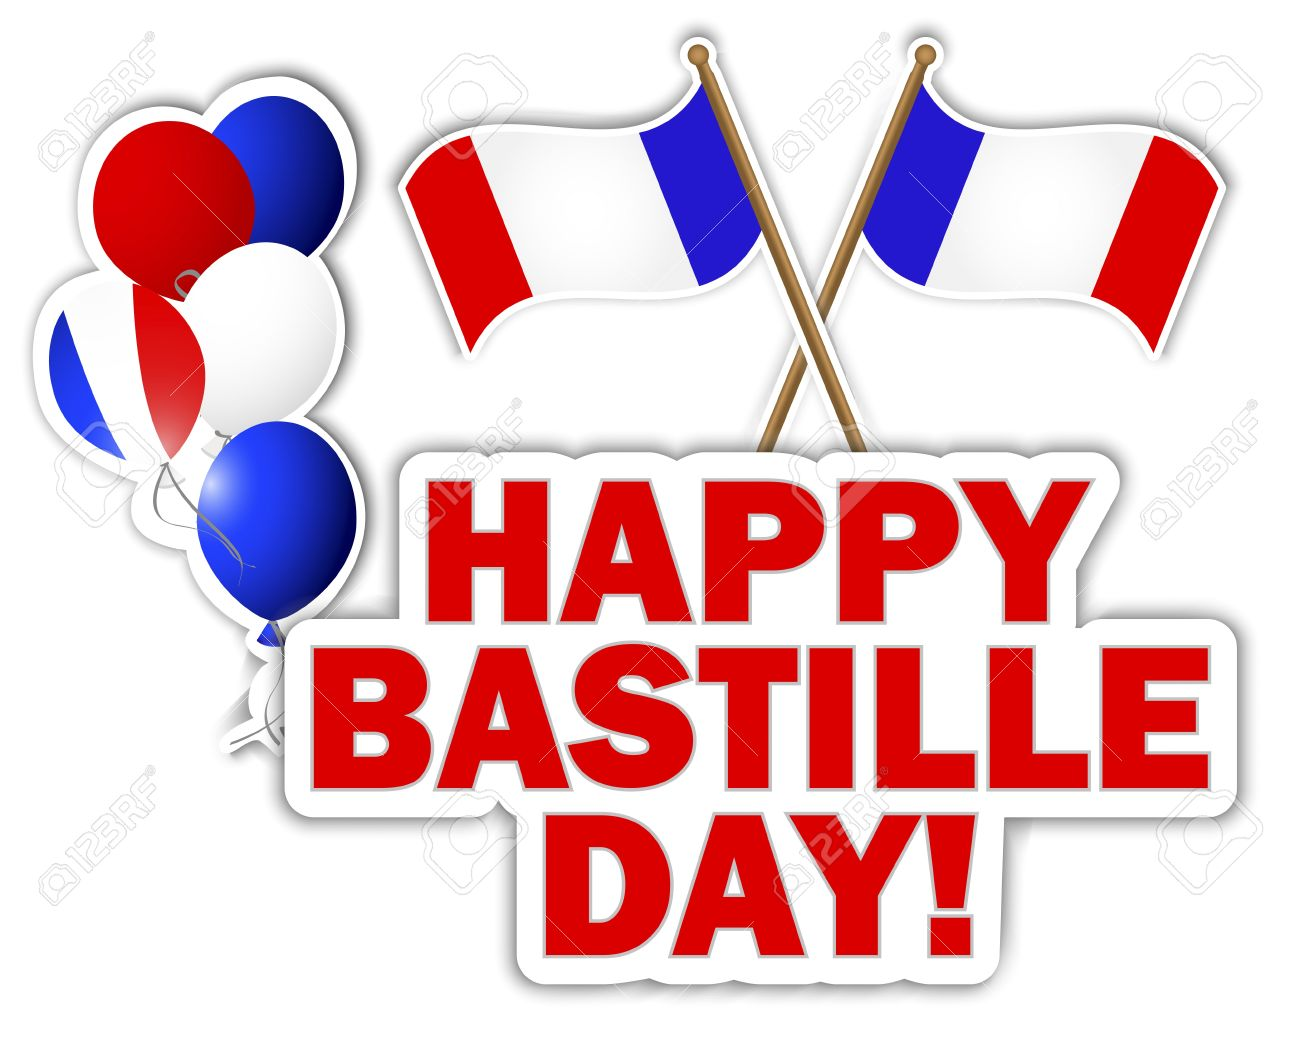 Bastille Day Stickers With Flags And Balloons Royalty Free.